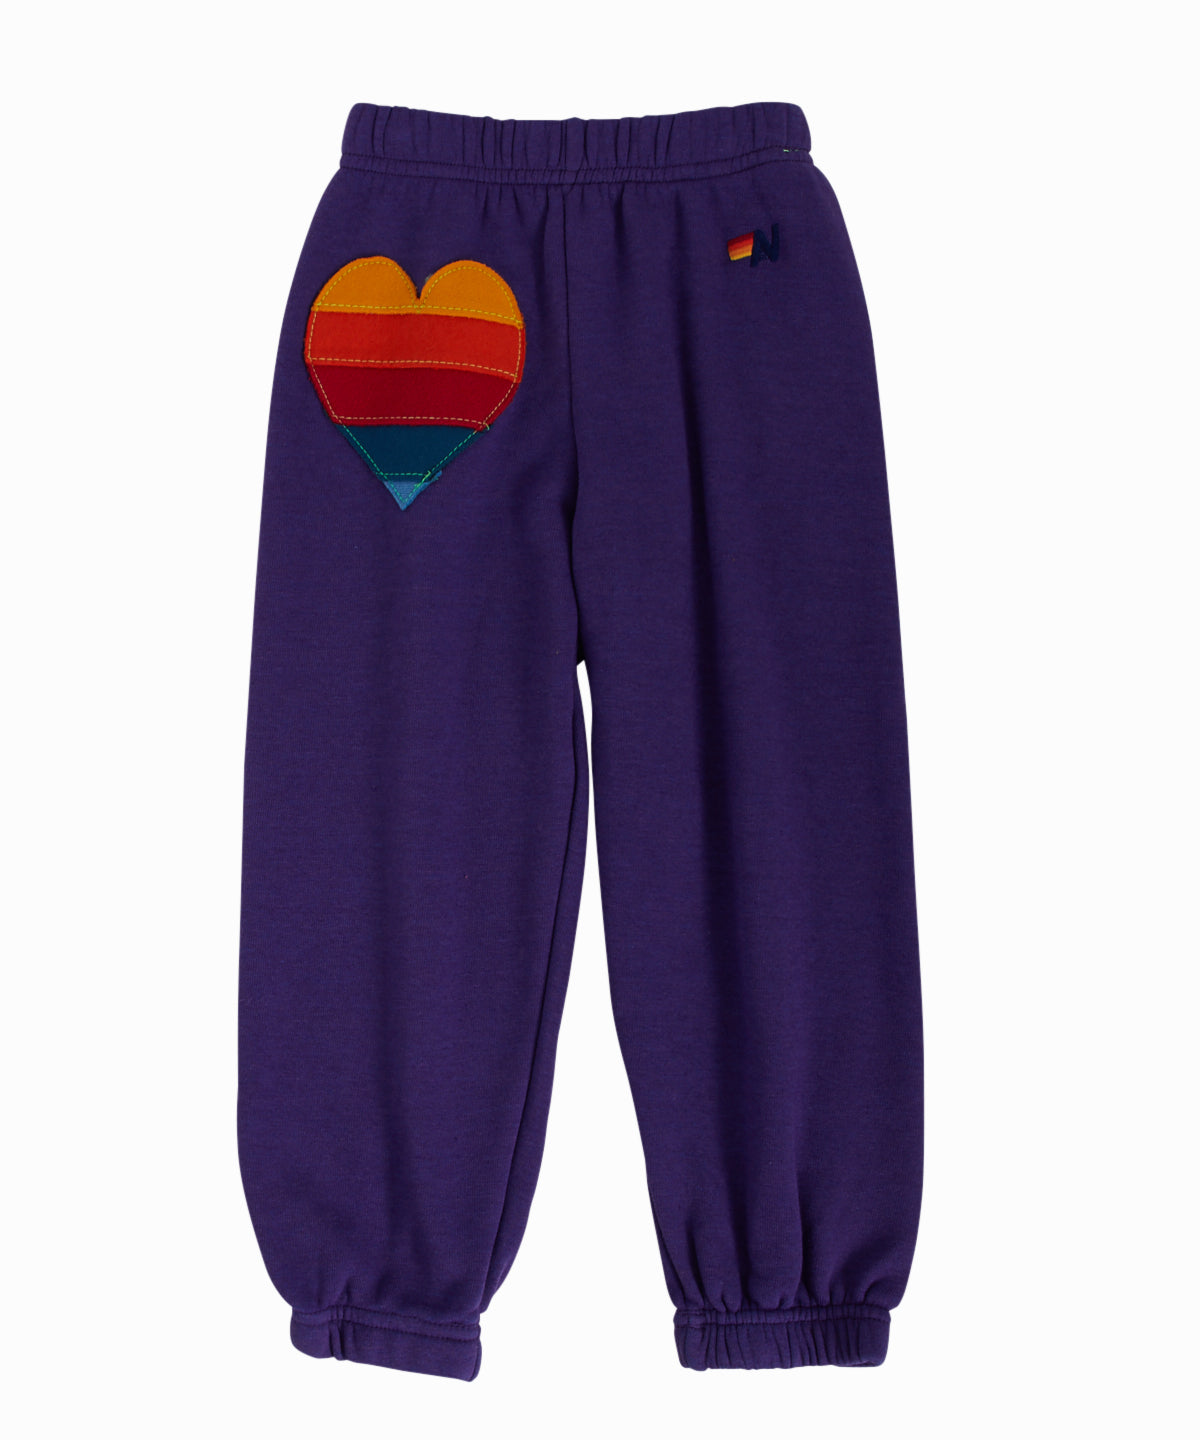 Heart Purple Sweatpants